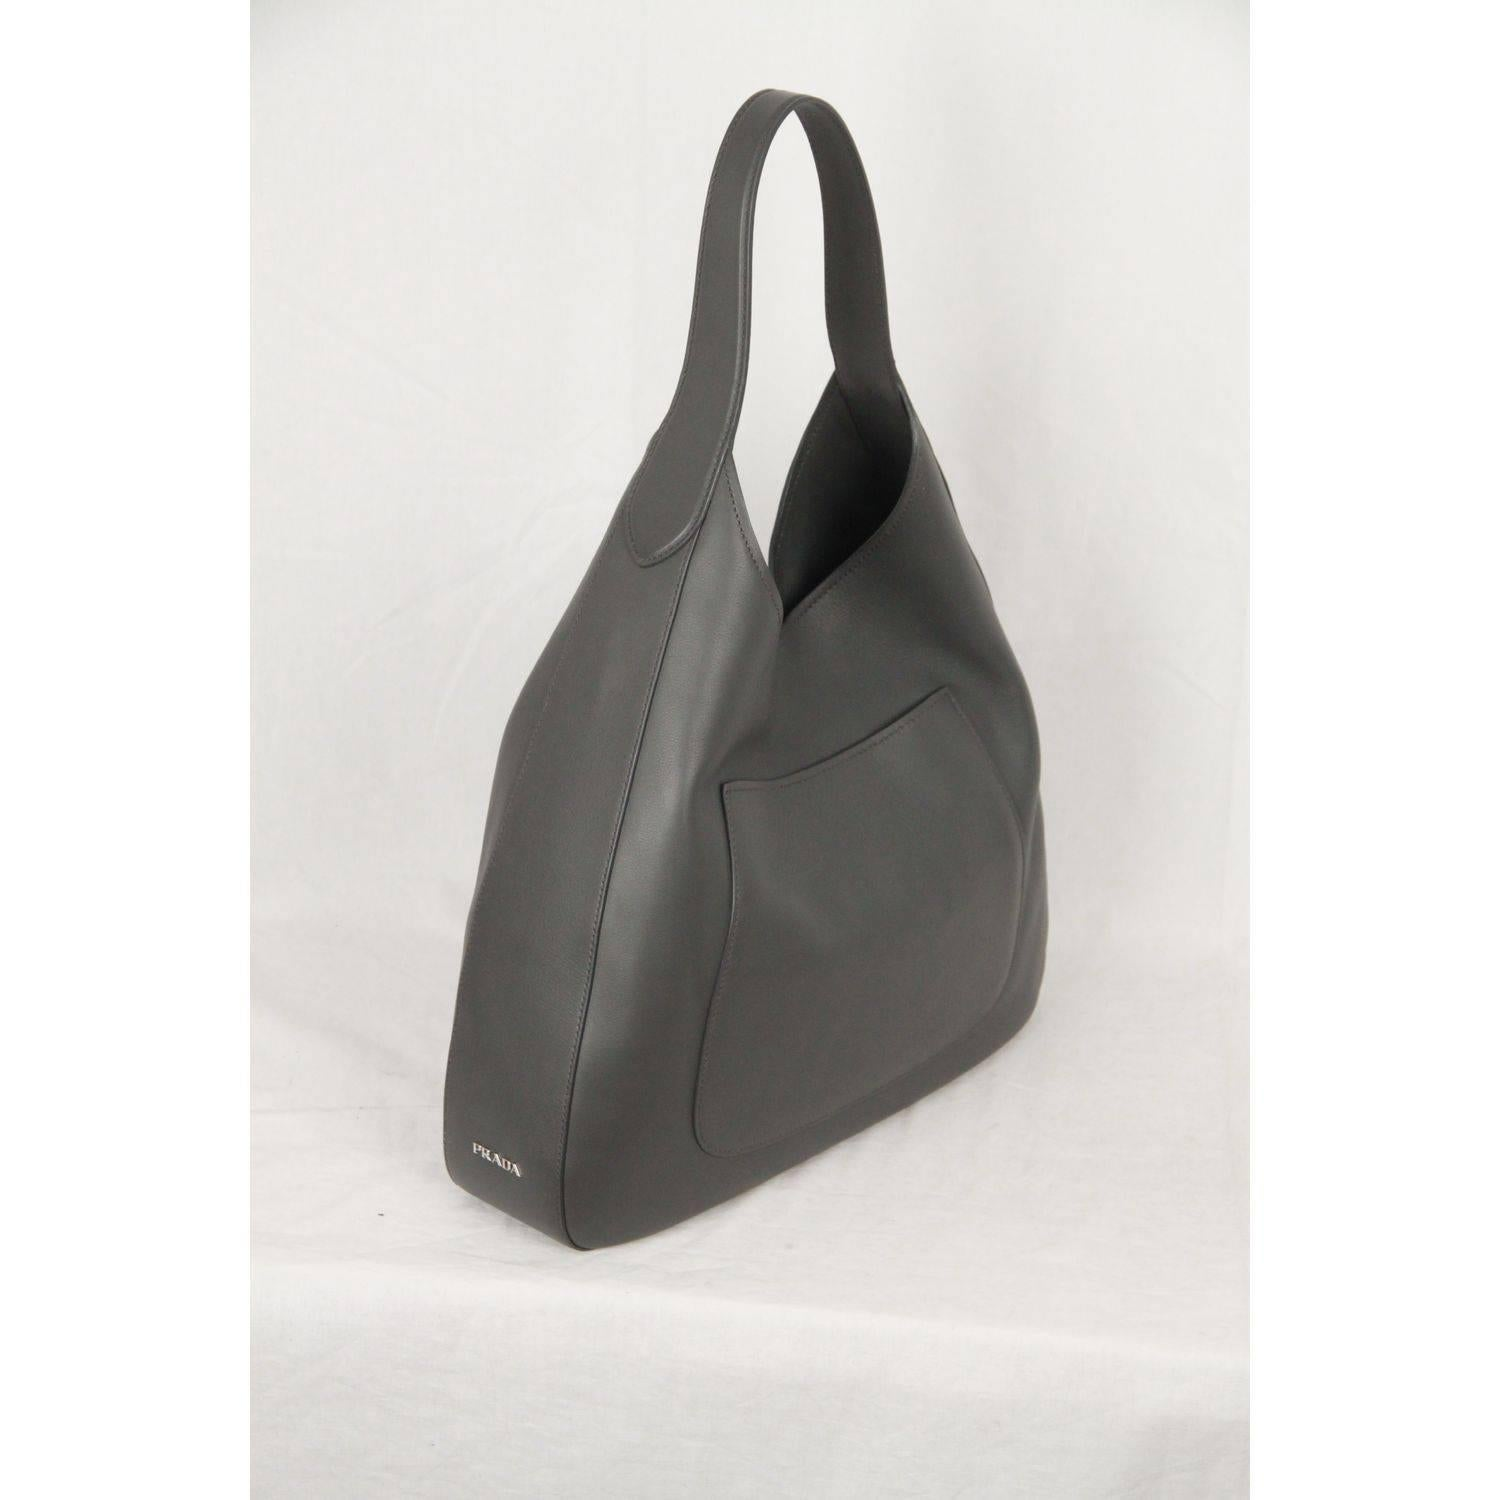 f3b30d52989f4a ... free shipping prada gray vitello corsica leather large hobo bag 1bc009  for sale at 1stdibs 76596